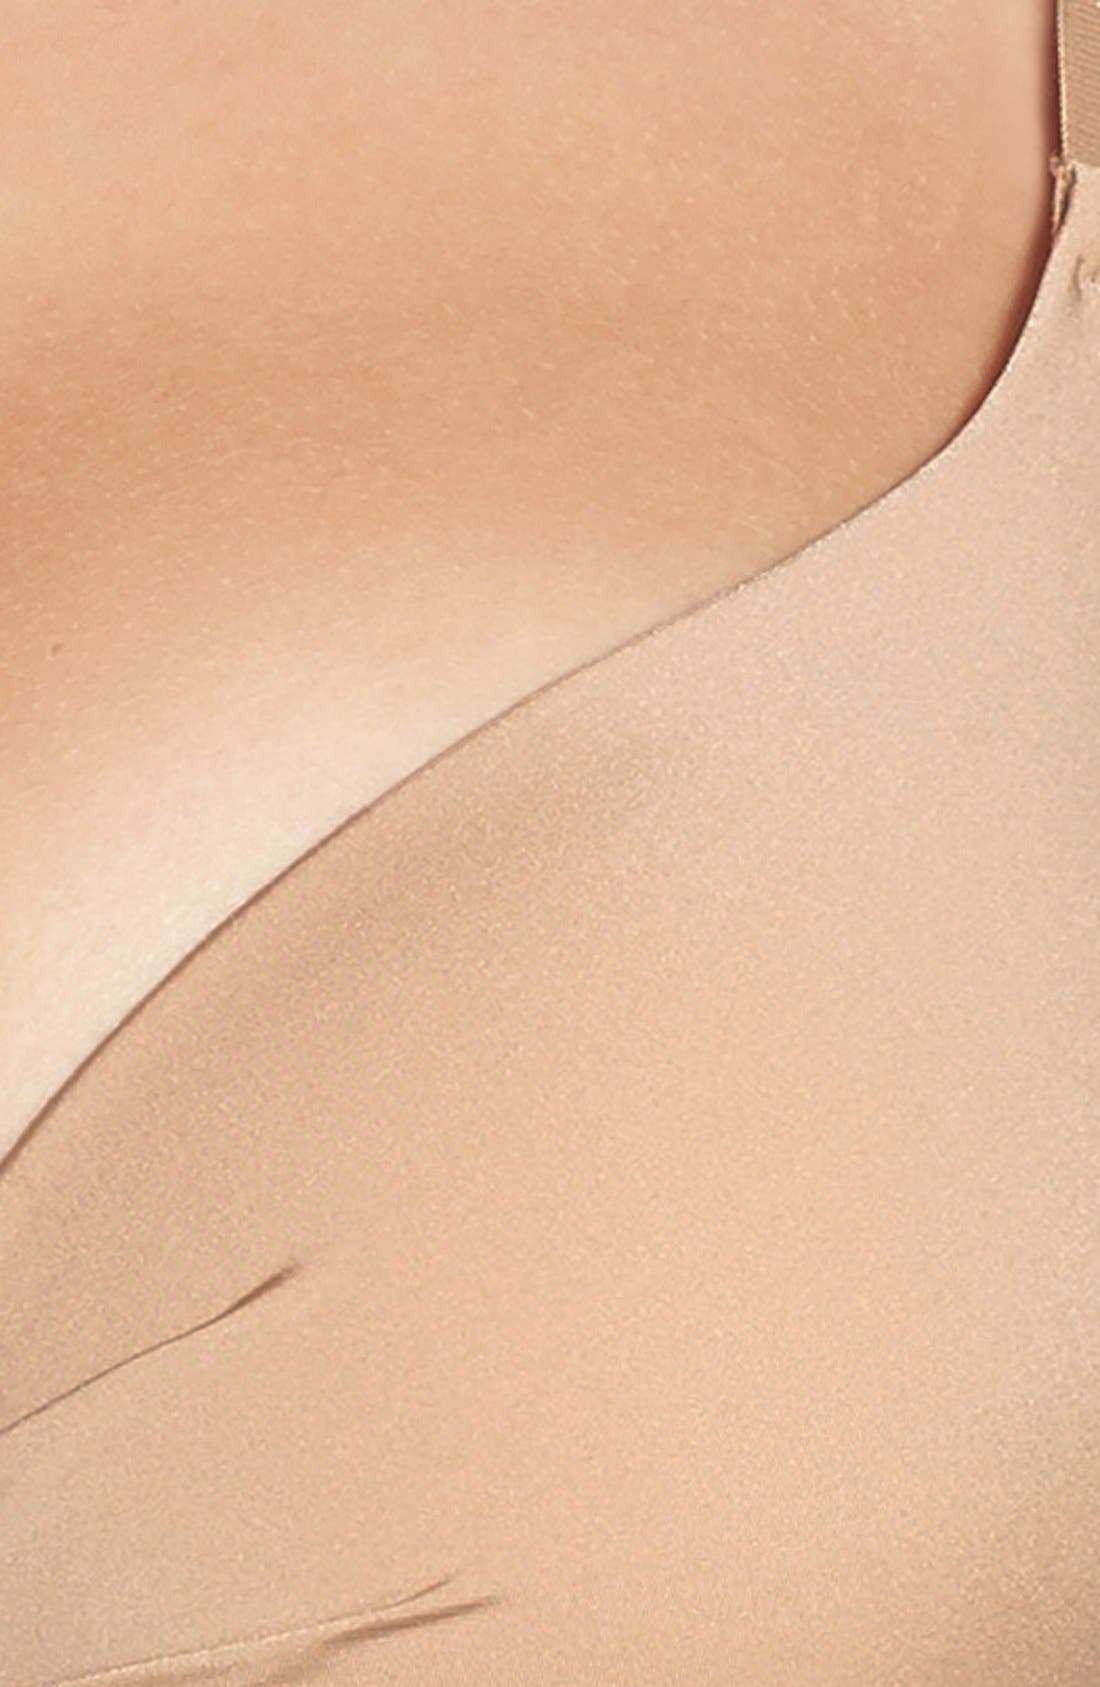 Alternate Image 3  - DKNY 'Perfect Profile' Underwire T-Shirt Bra